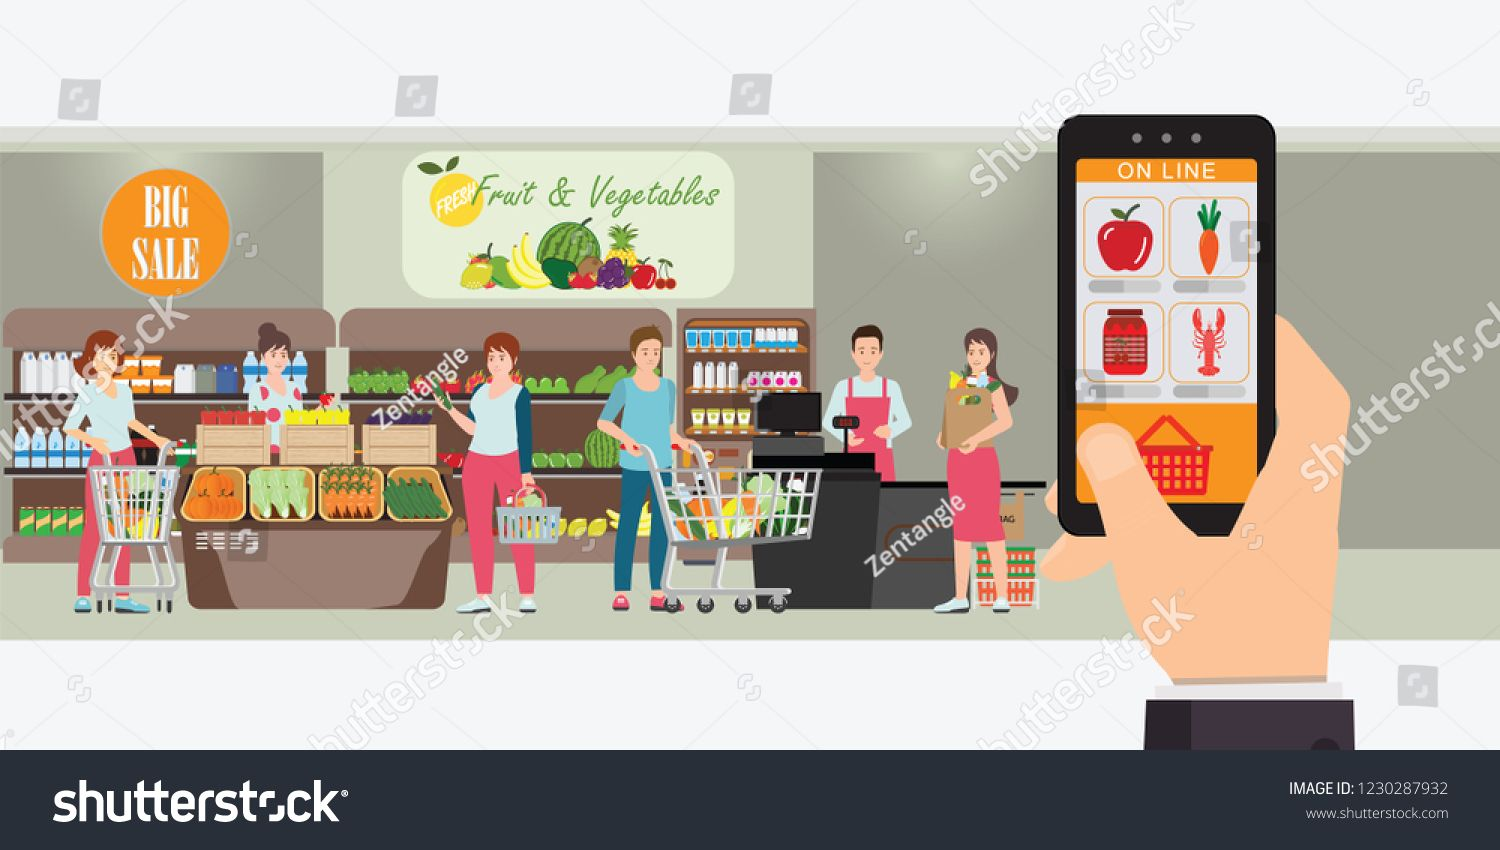 Hand Holding Smartphone With Shopping App Interior Store Inside